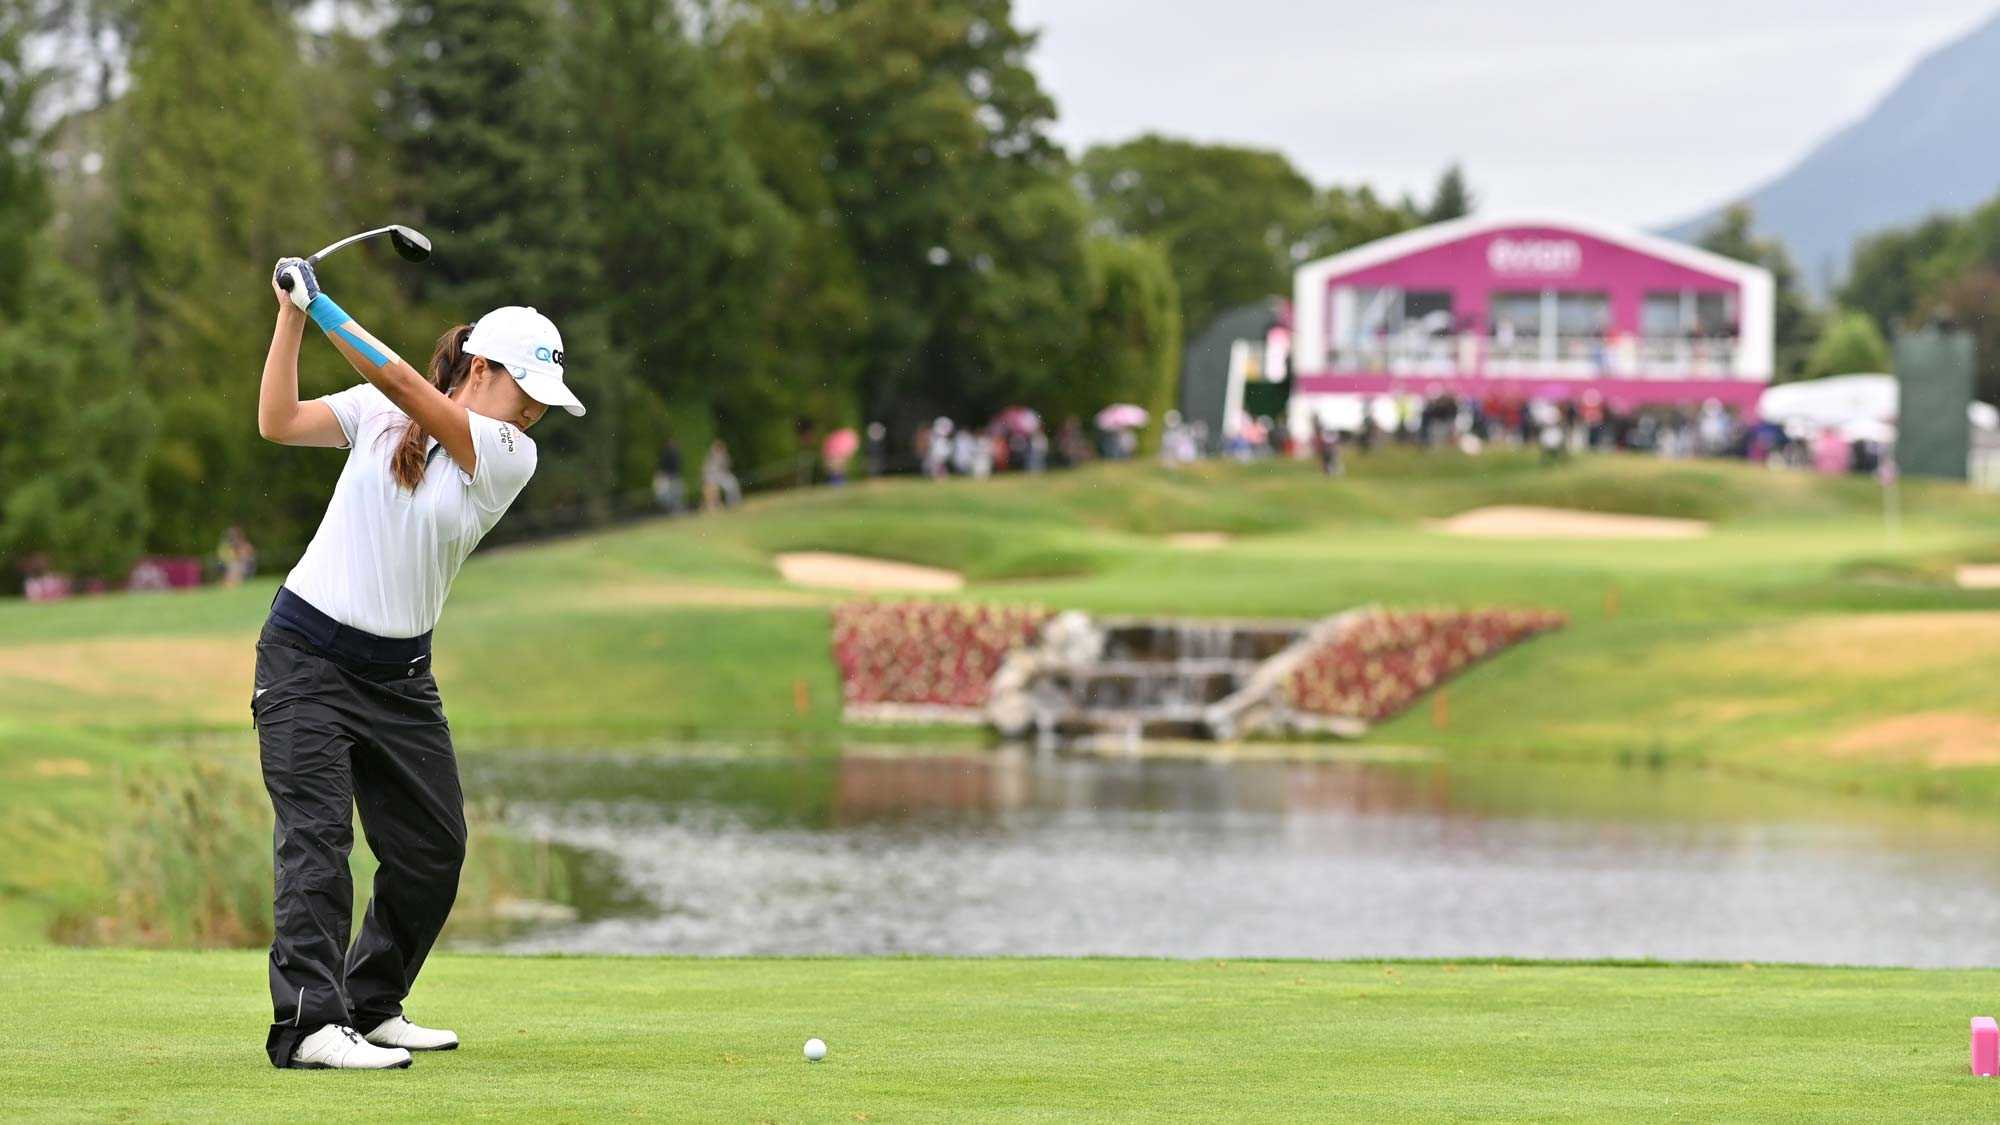 I. K. Kim of South Korea in action on the 5th hole during day 4 of the Evian Championship